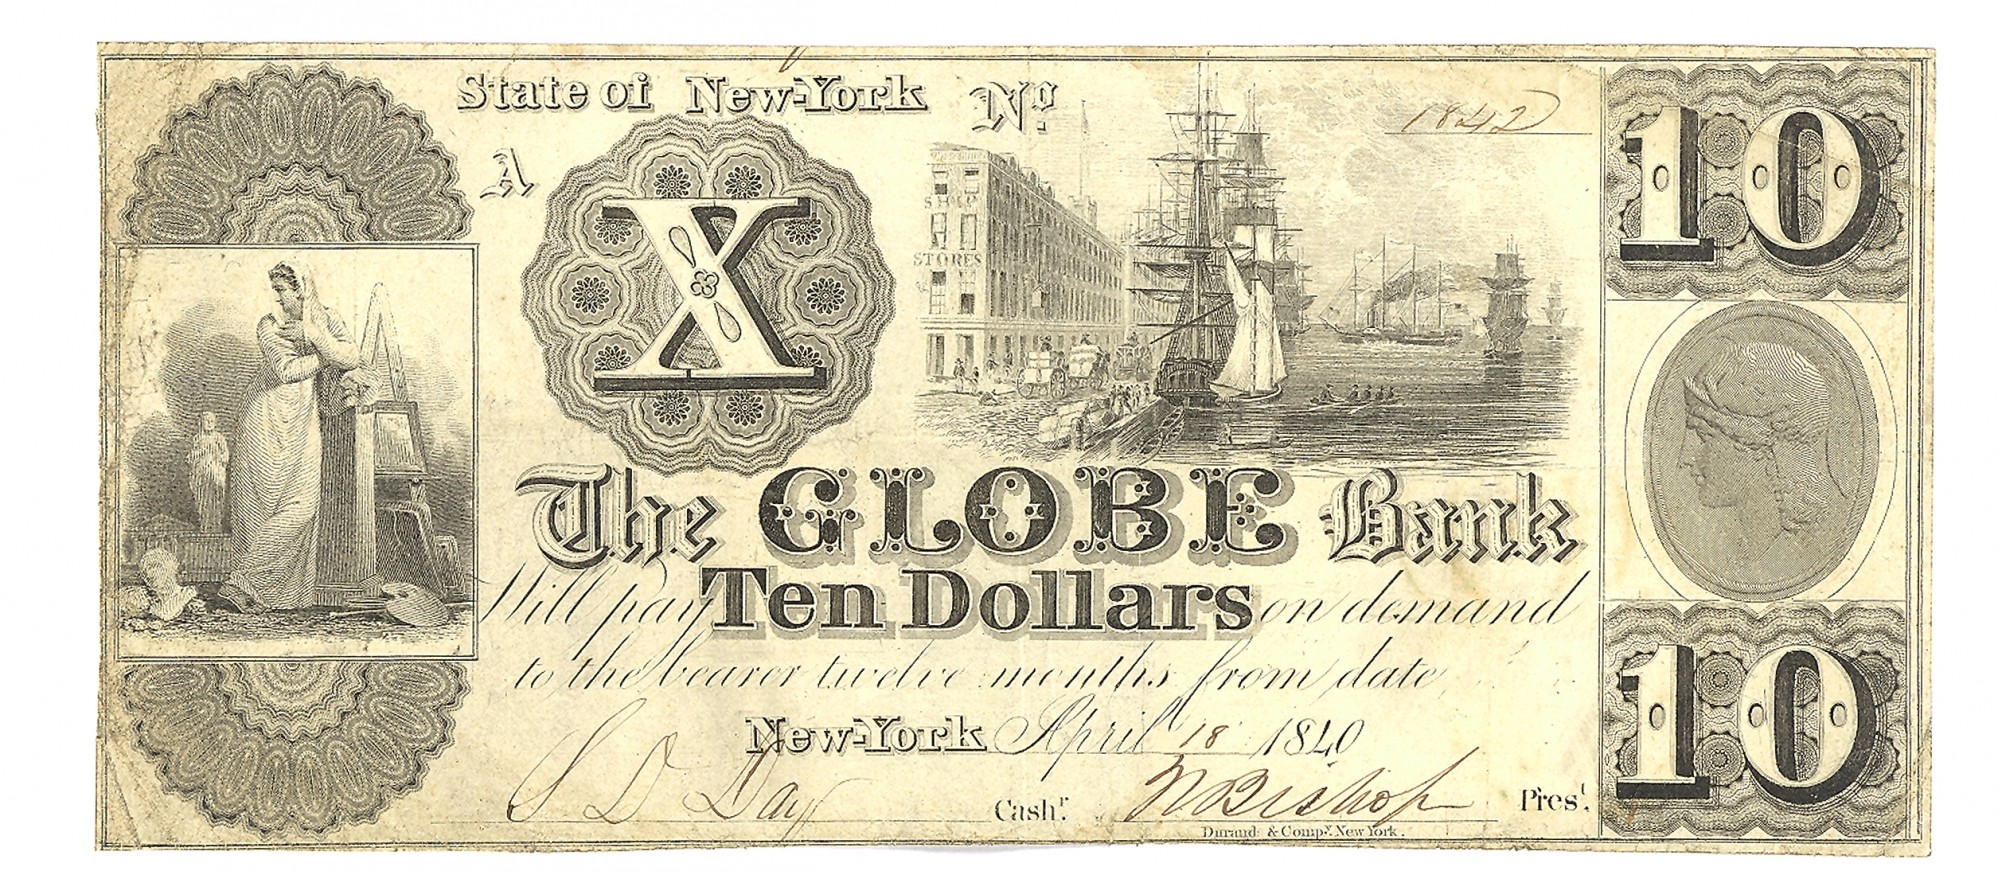 THE GLOBE BANK, NEW YORK CITY, NEW YORK $10 NOTE